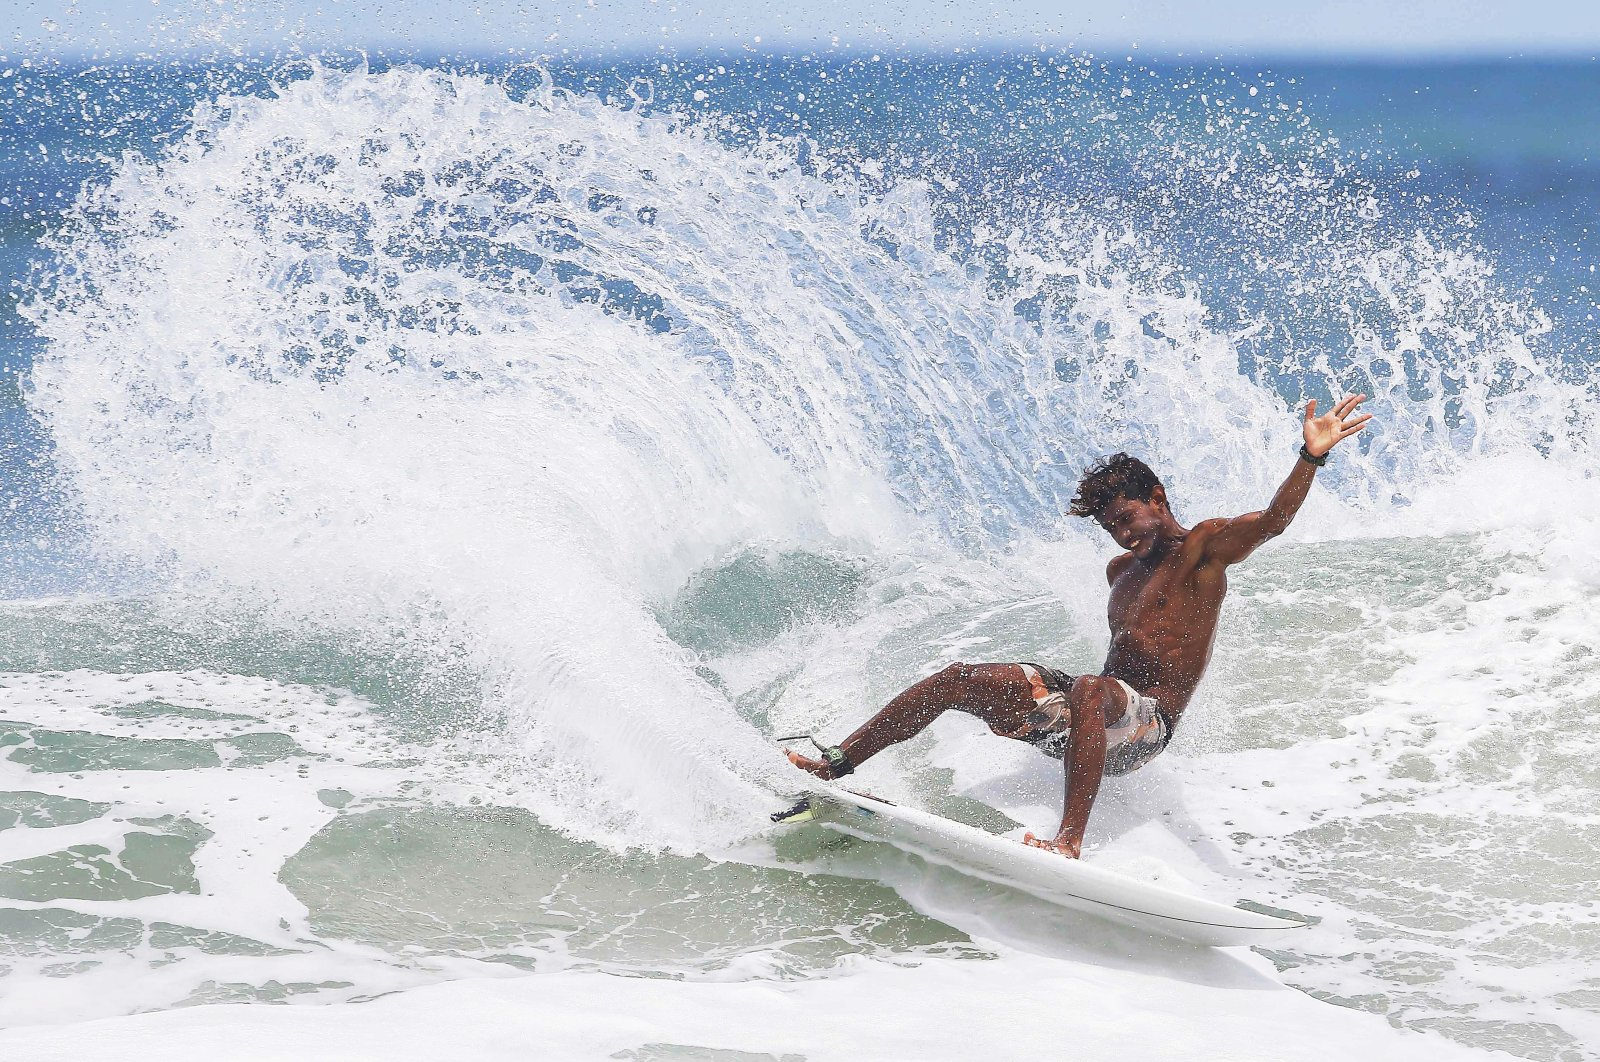 A surfer in action on Garza Beach, in the province of Guanacaste, Costa Rica, June 23, 2021. Surfing will make its debut at the Tokyo 2020 Olympics. (EPA Photo)